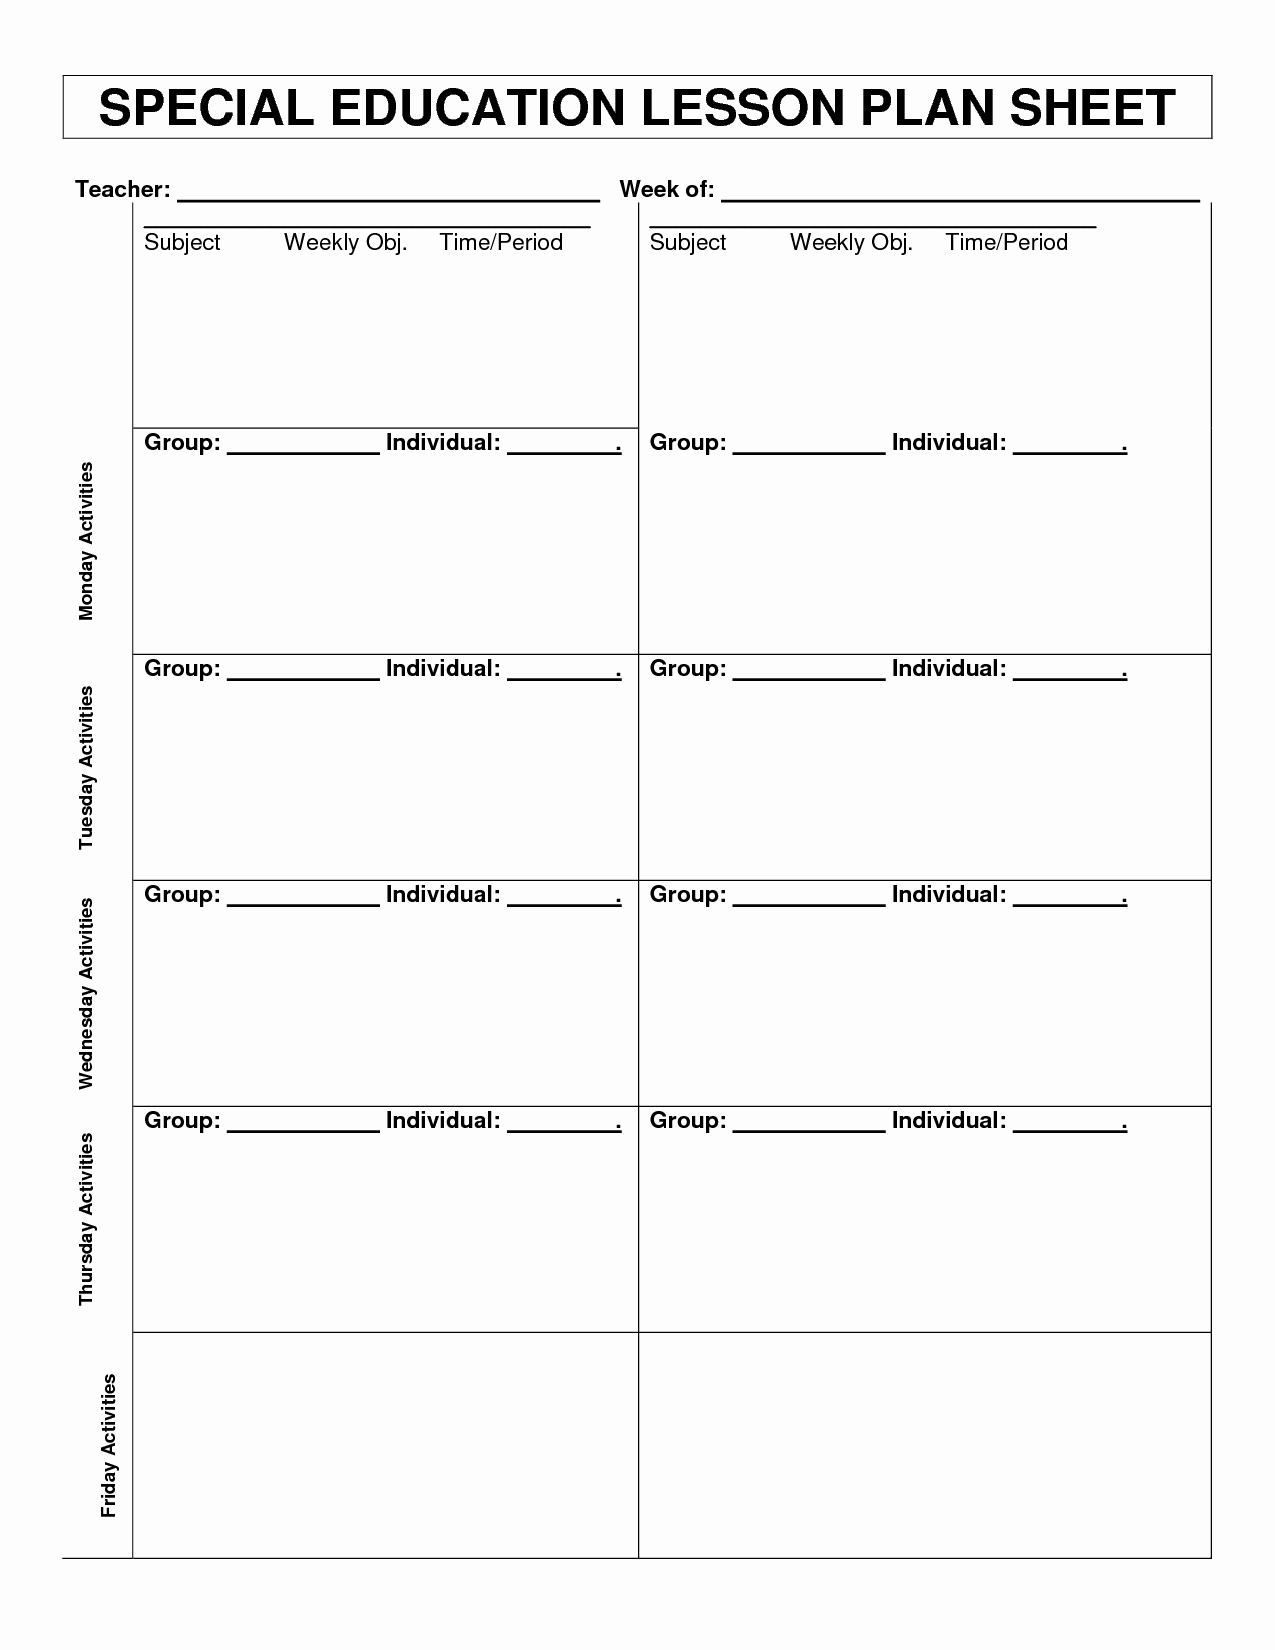 Special Education Lesson Plan Template Lovely Special Education Lesson Plan Template Templates Collections